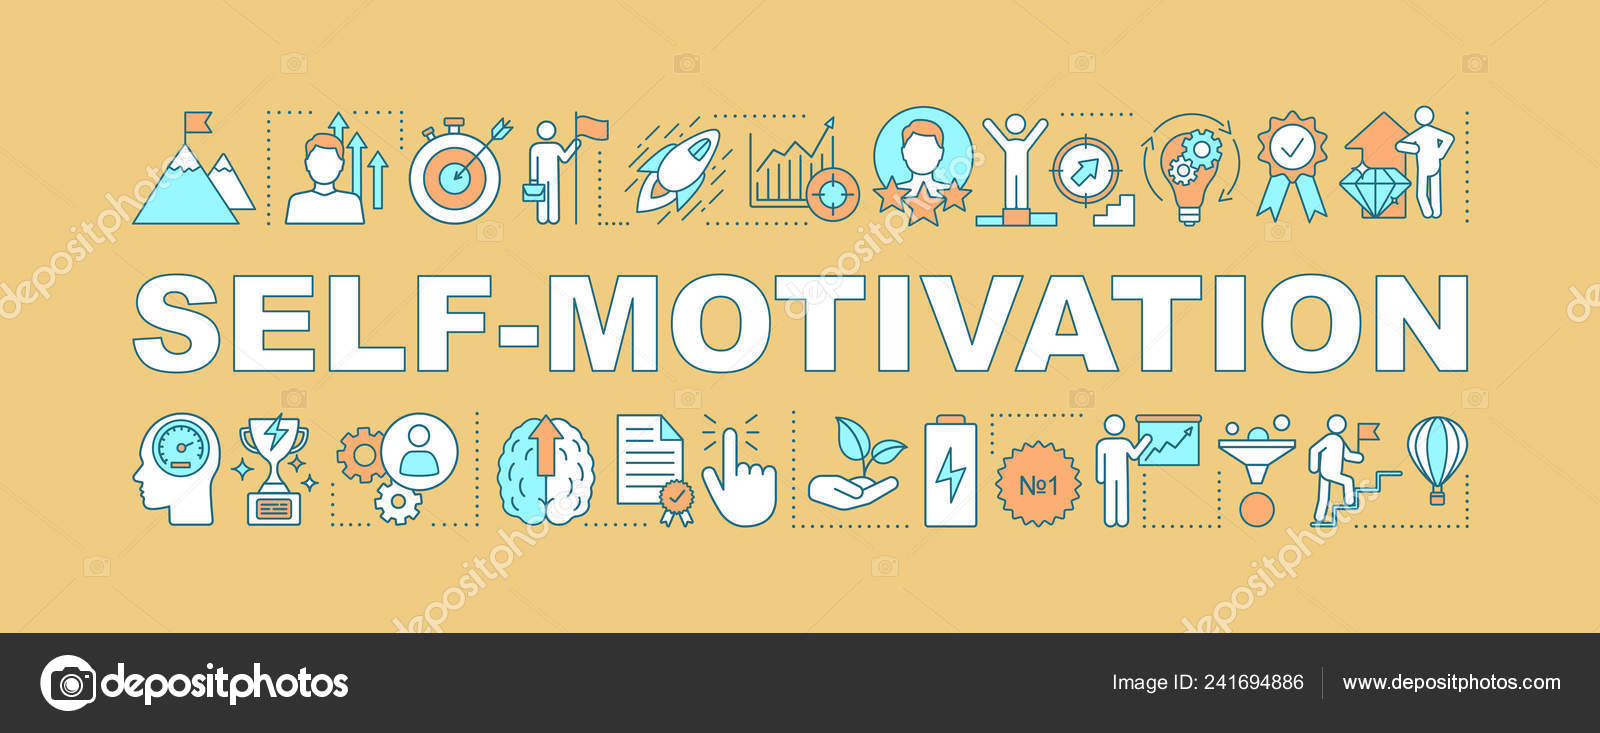 Self Motivation Word Concept Banner Goal Achieving Skill Improvement Personal Stock Vector C Bsd 241694886